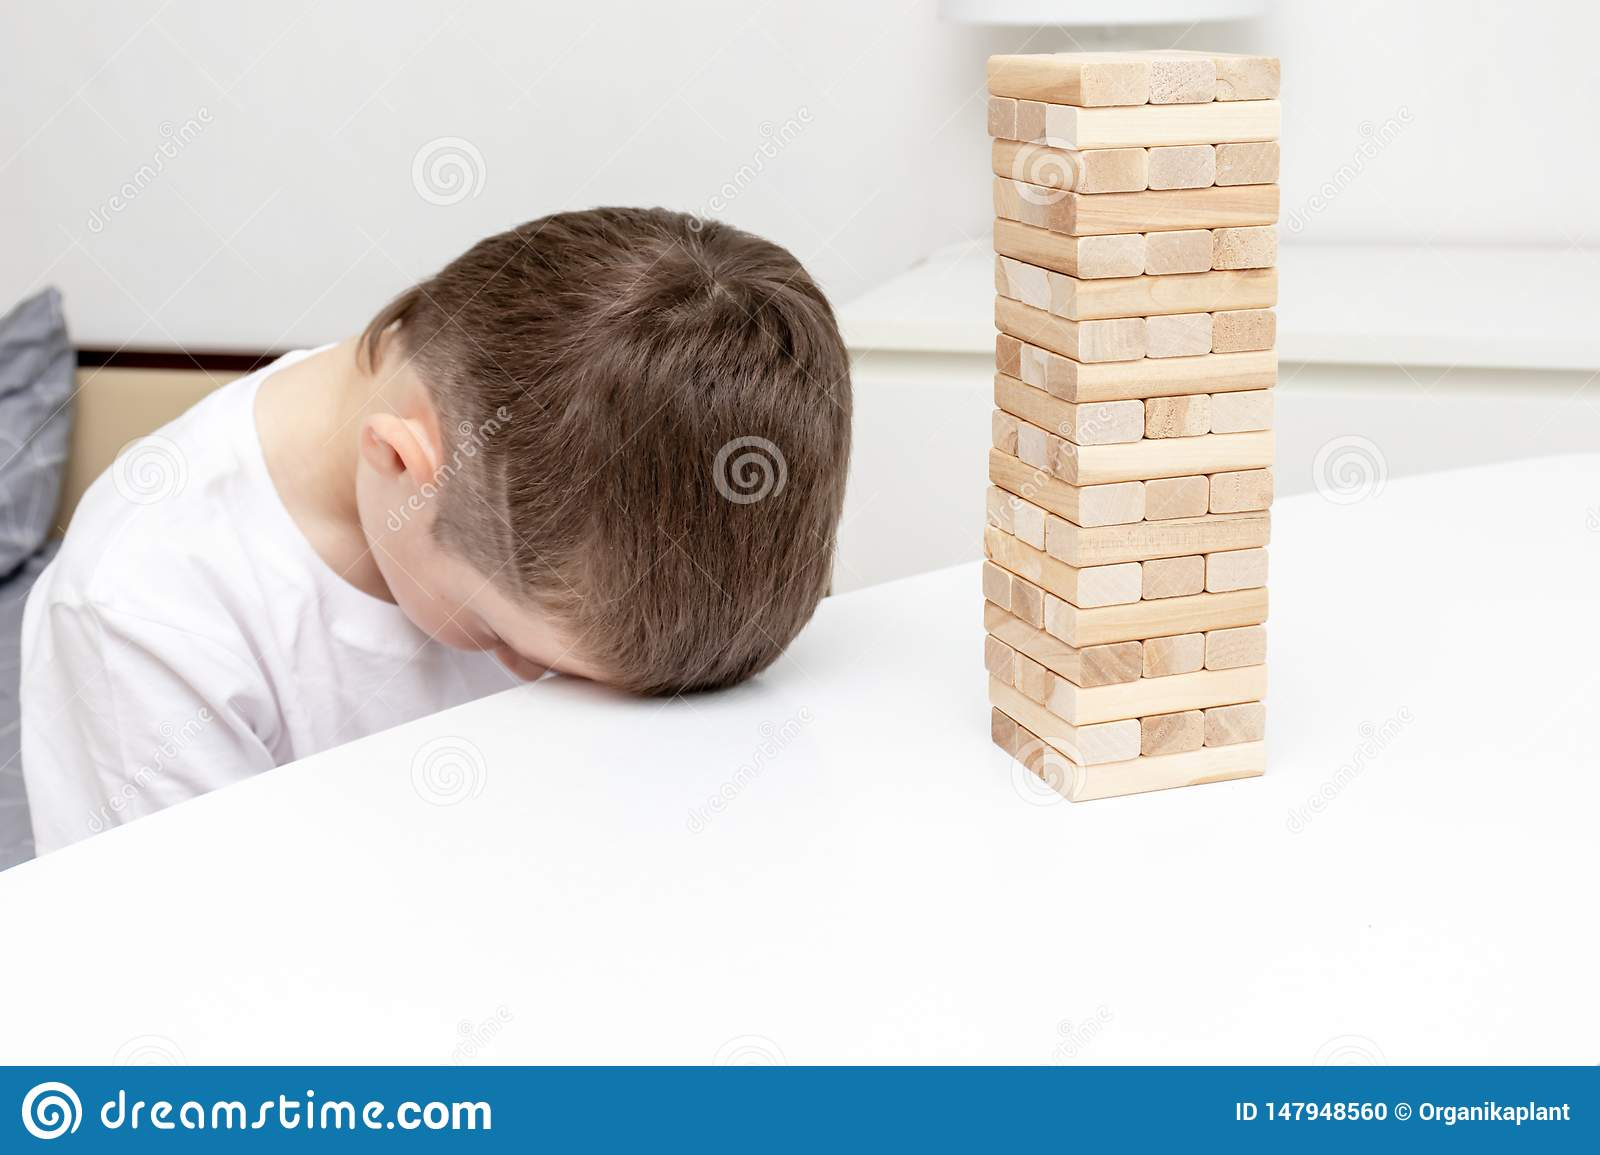 A bored preteen caucasian boy trying to play wooden block tower board game to entertain himself